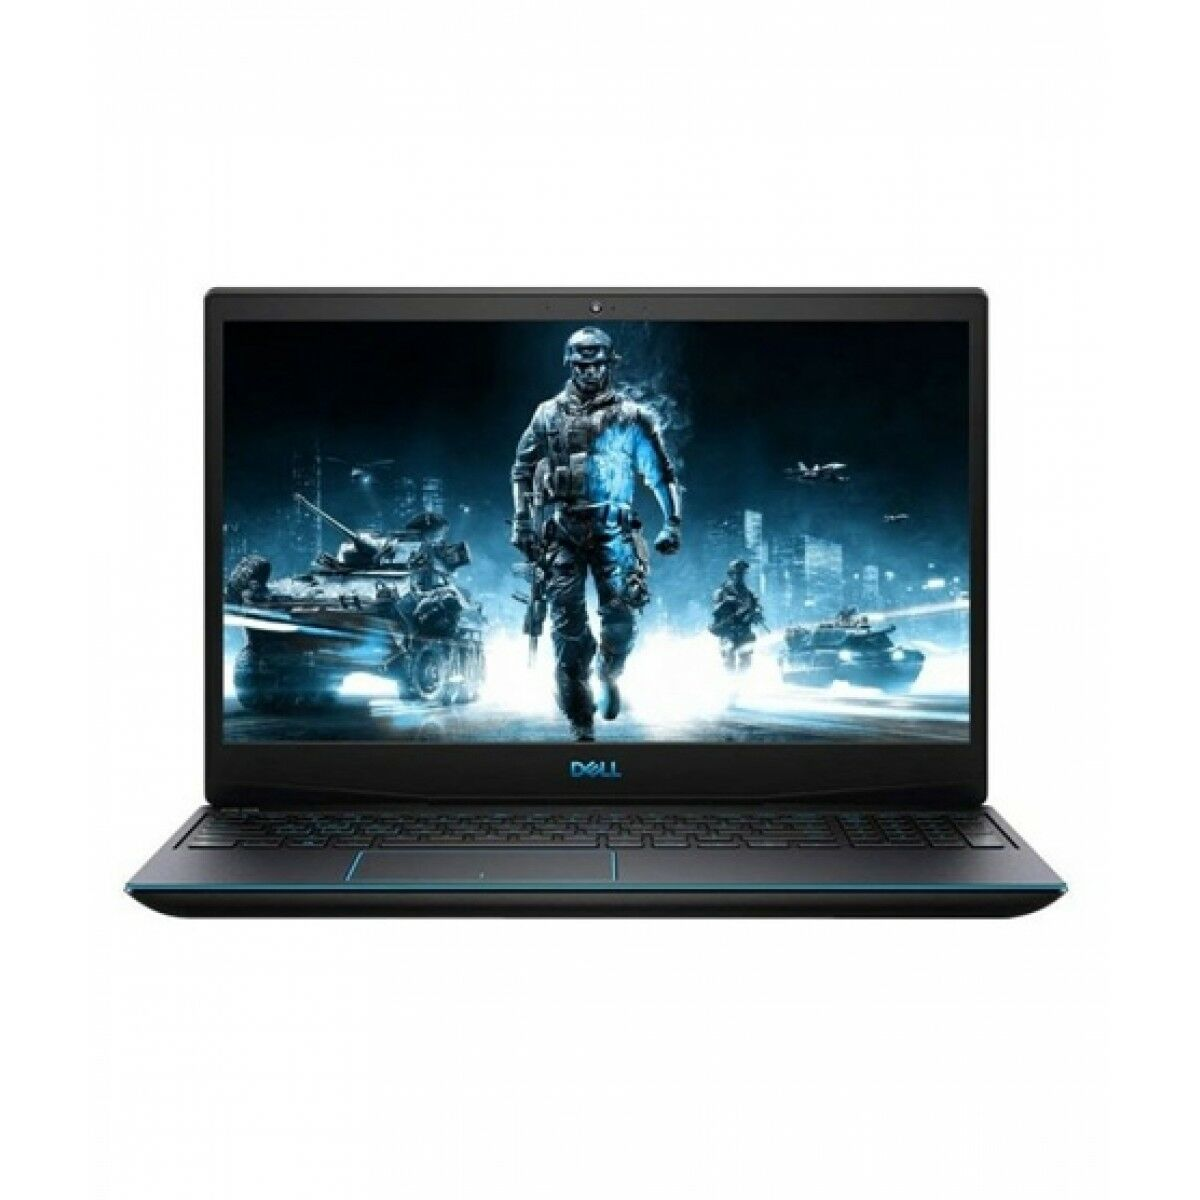 """Dell G3 15.6"""" Core i7 10th Gen 8GB 256GB SSD GeForce GTX 1650 Gaming Laptop (3500) - Without Warranty"""